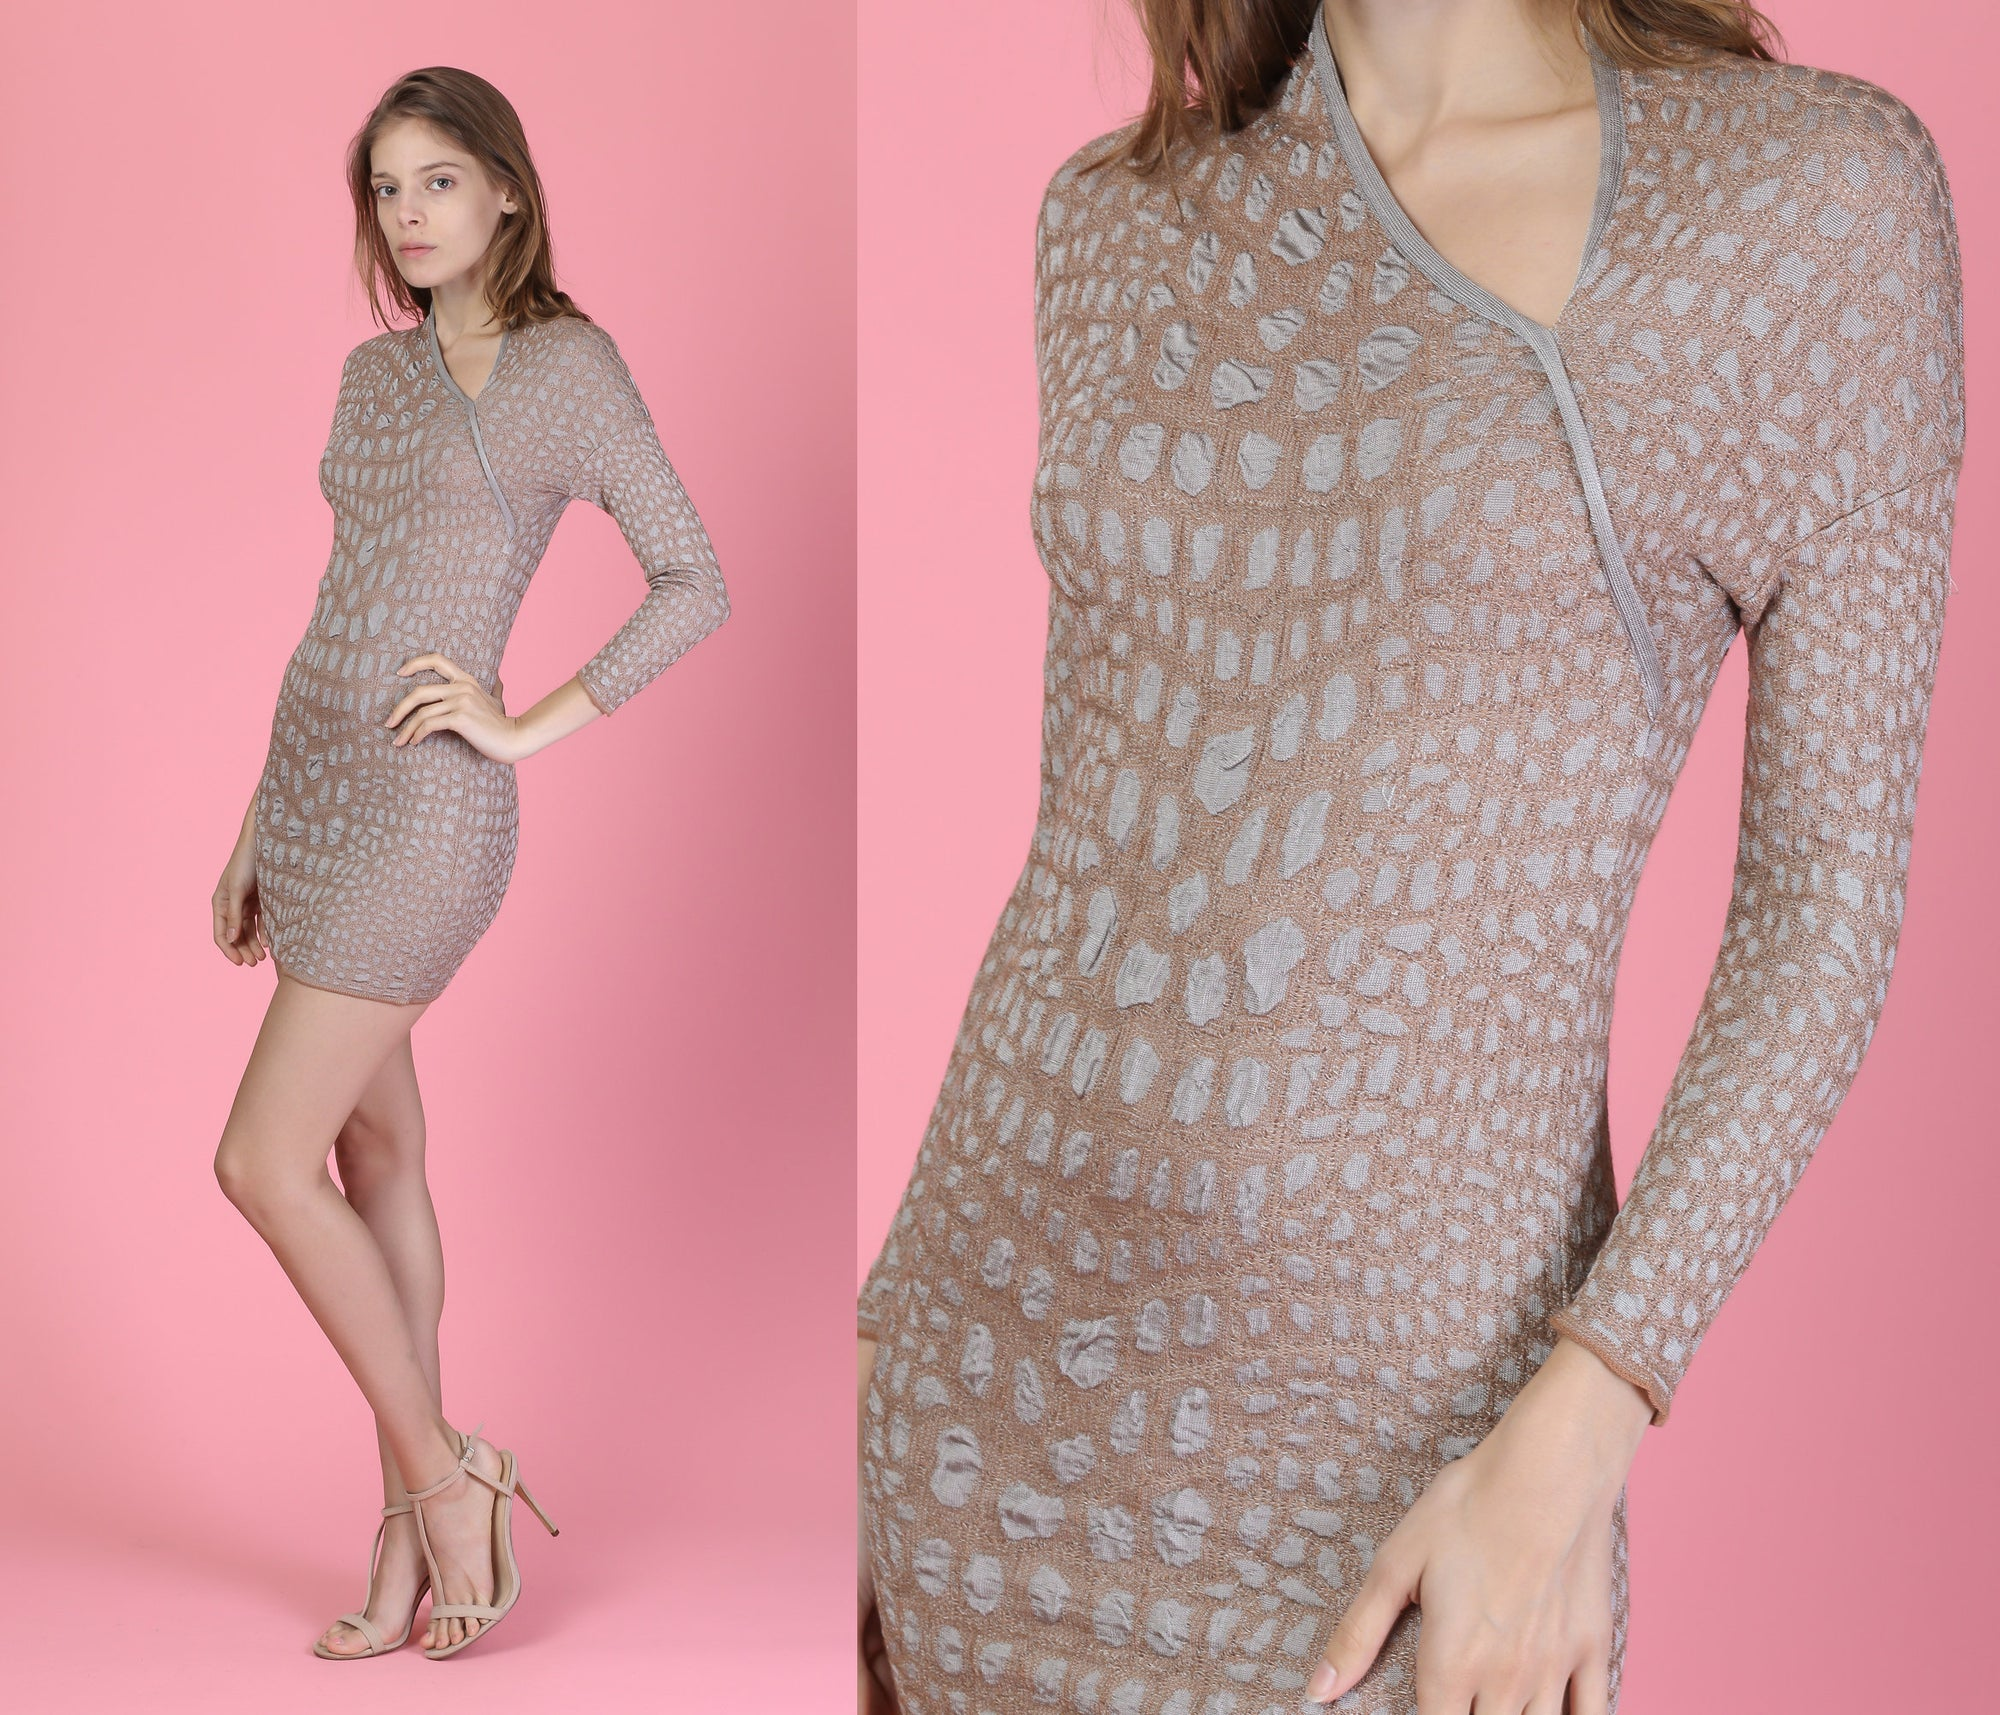 Vintage Missoni Alligator Print Knit Dress - Medium